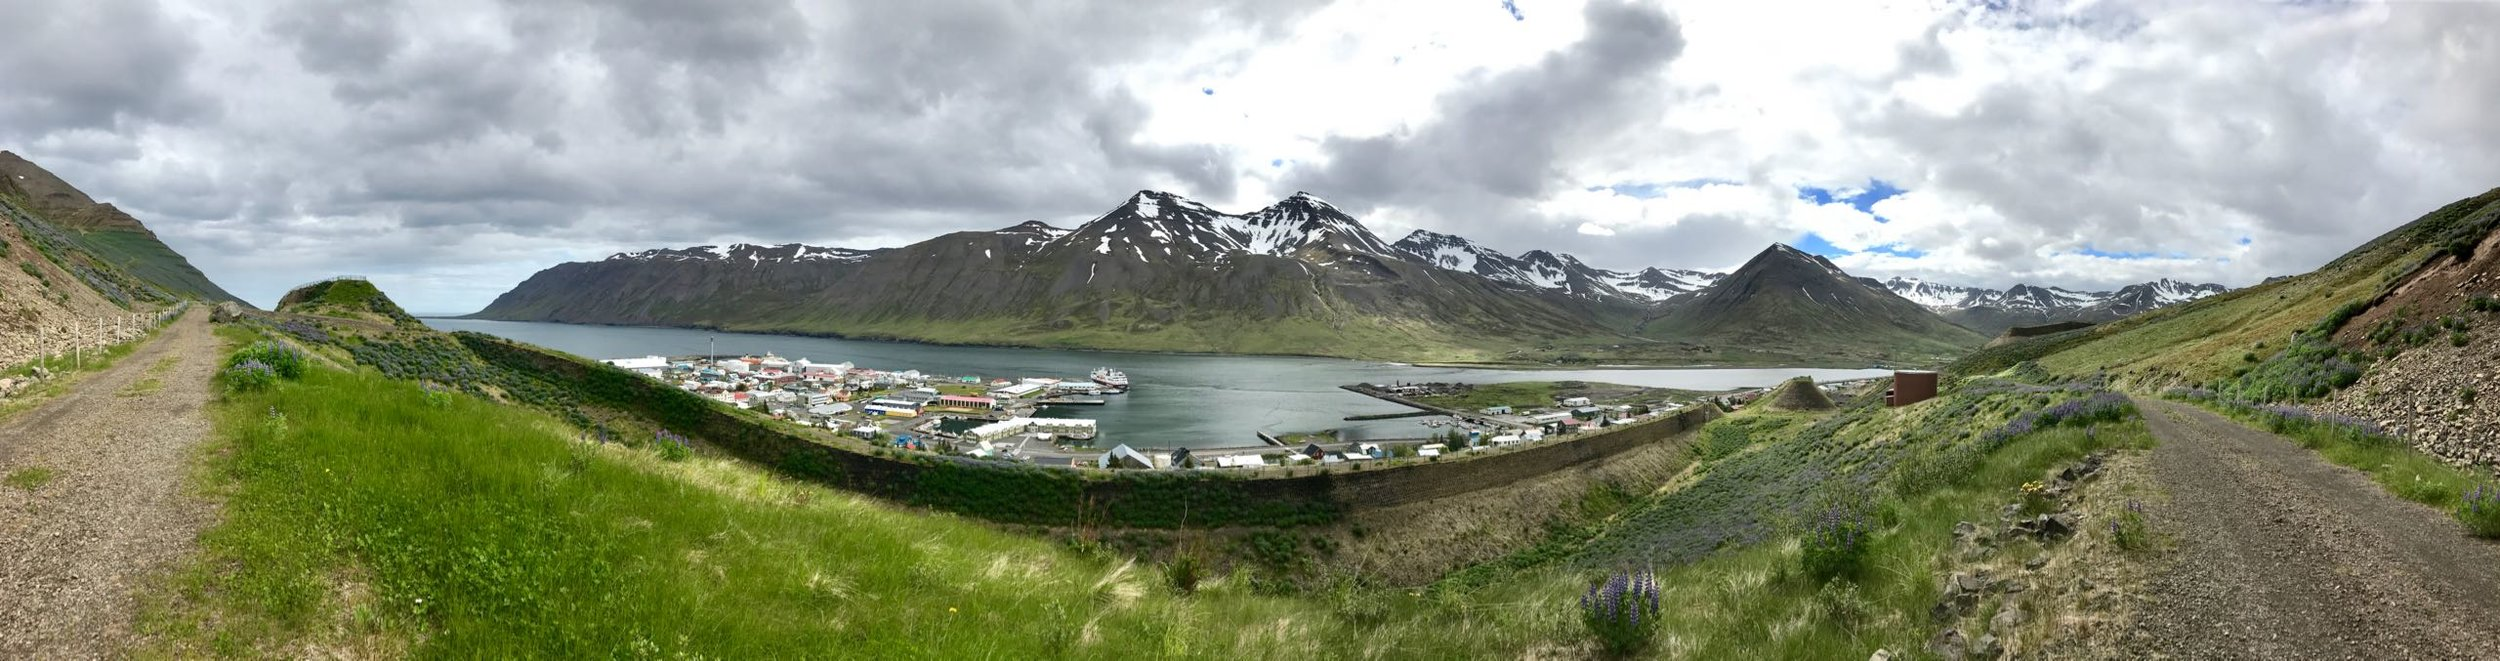 'City' life in North Iceland